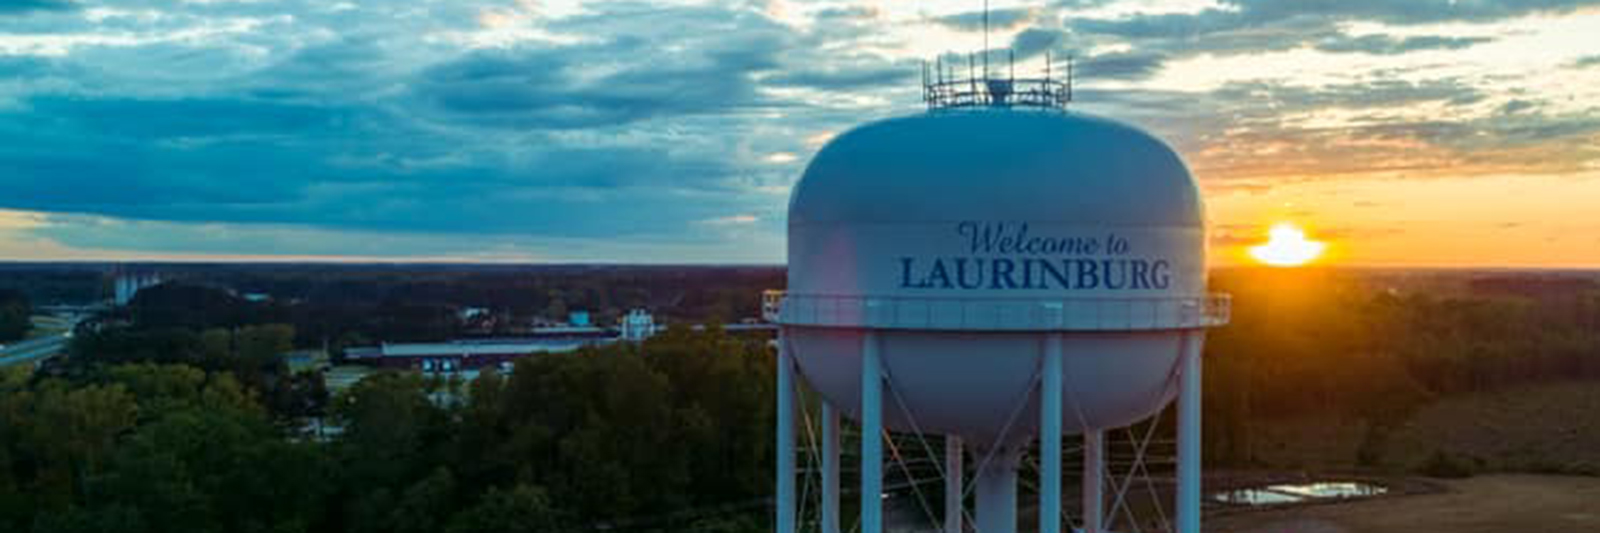 Welcome-to-Laurinburg.jpg